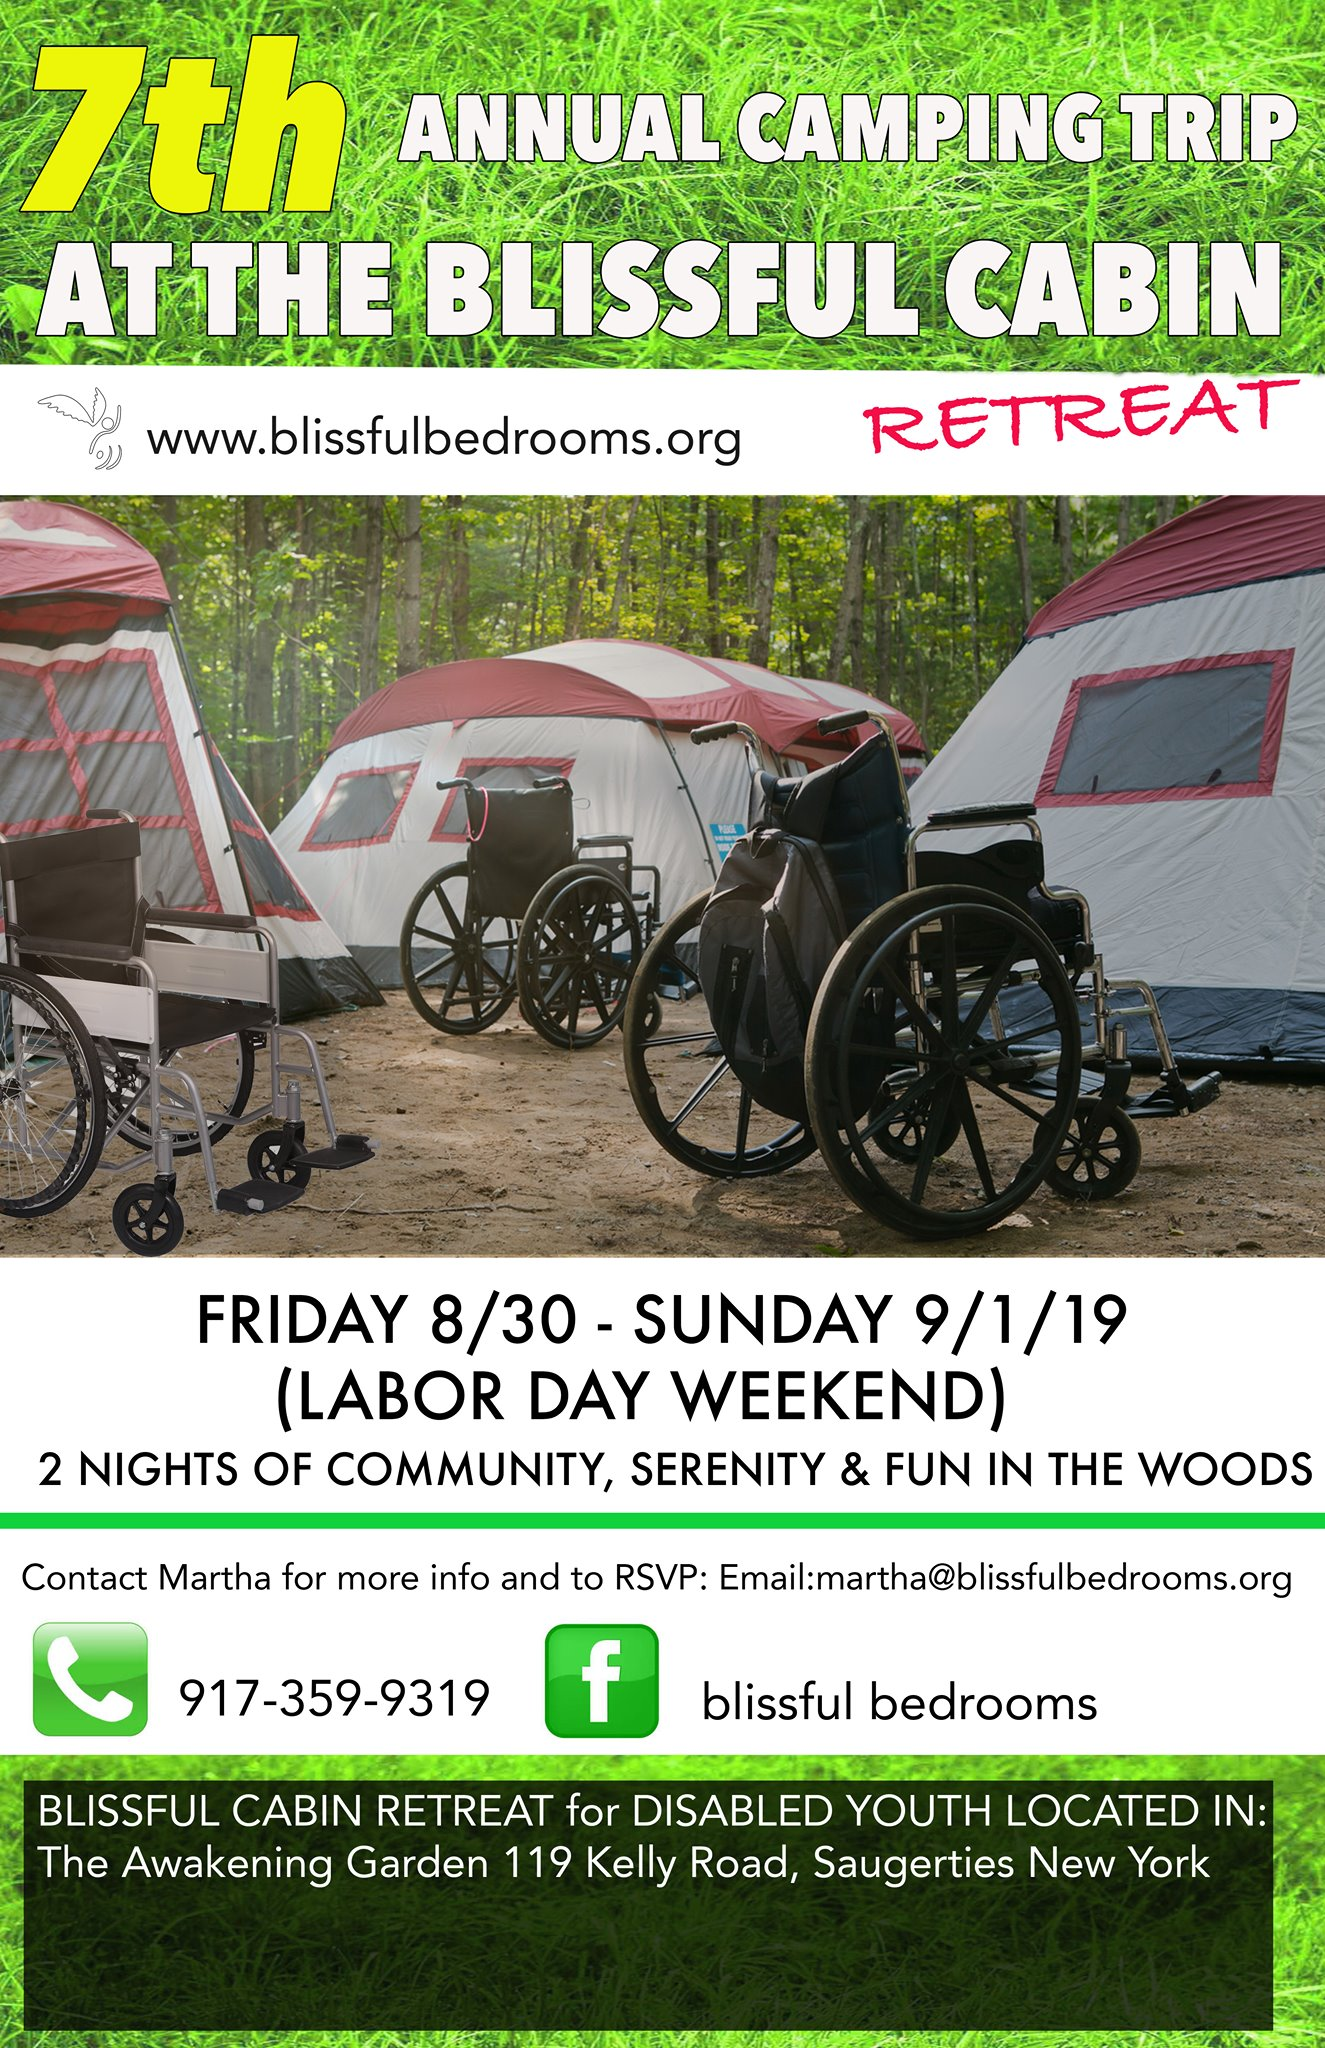 Camping trip flyer 2019